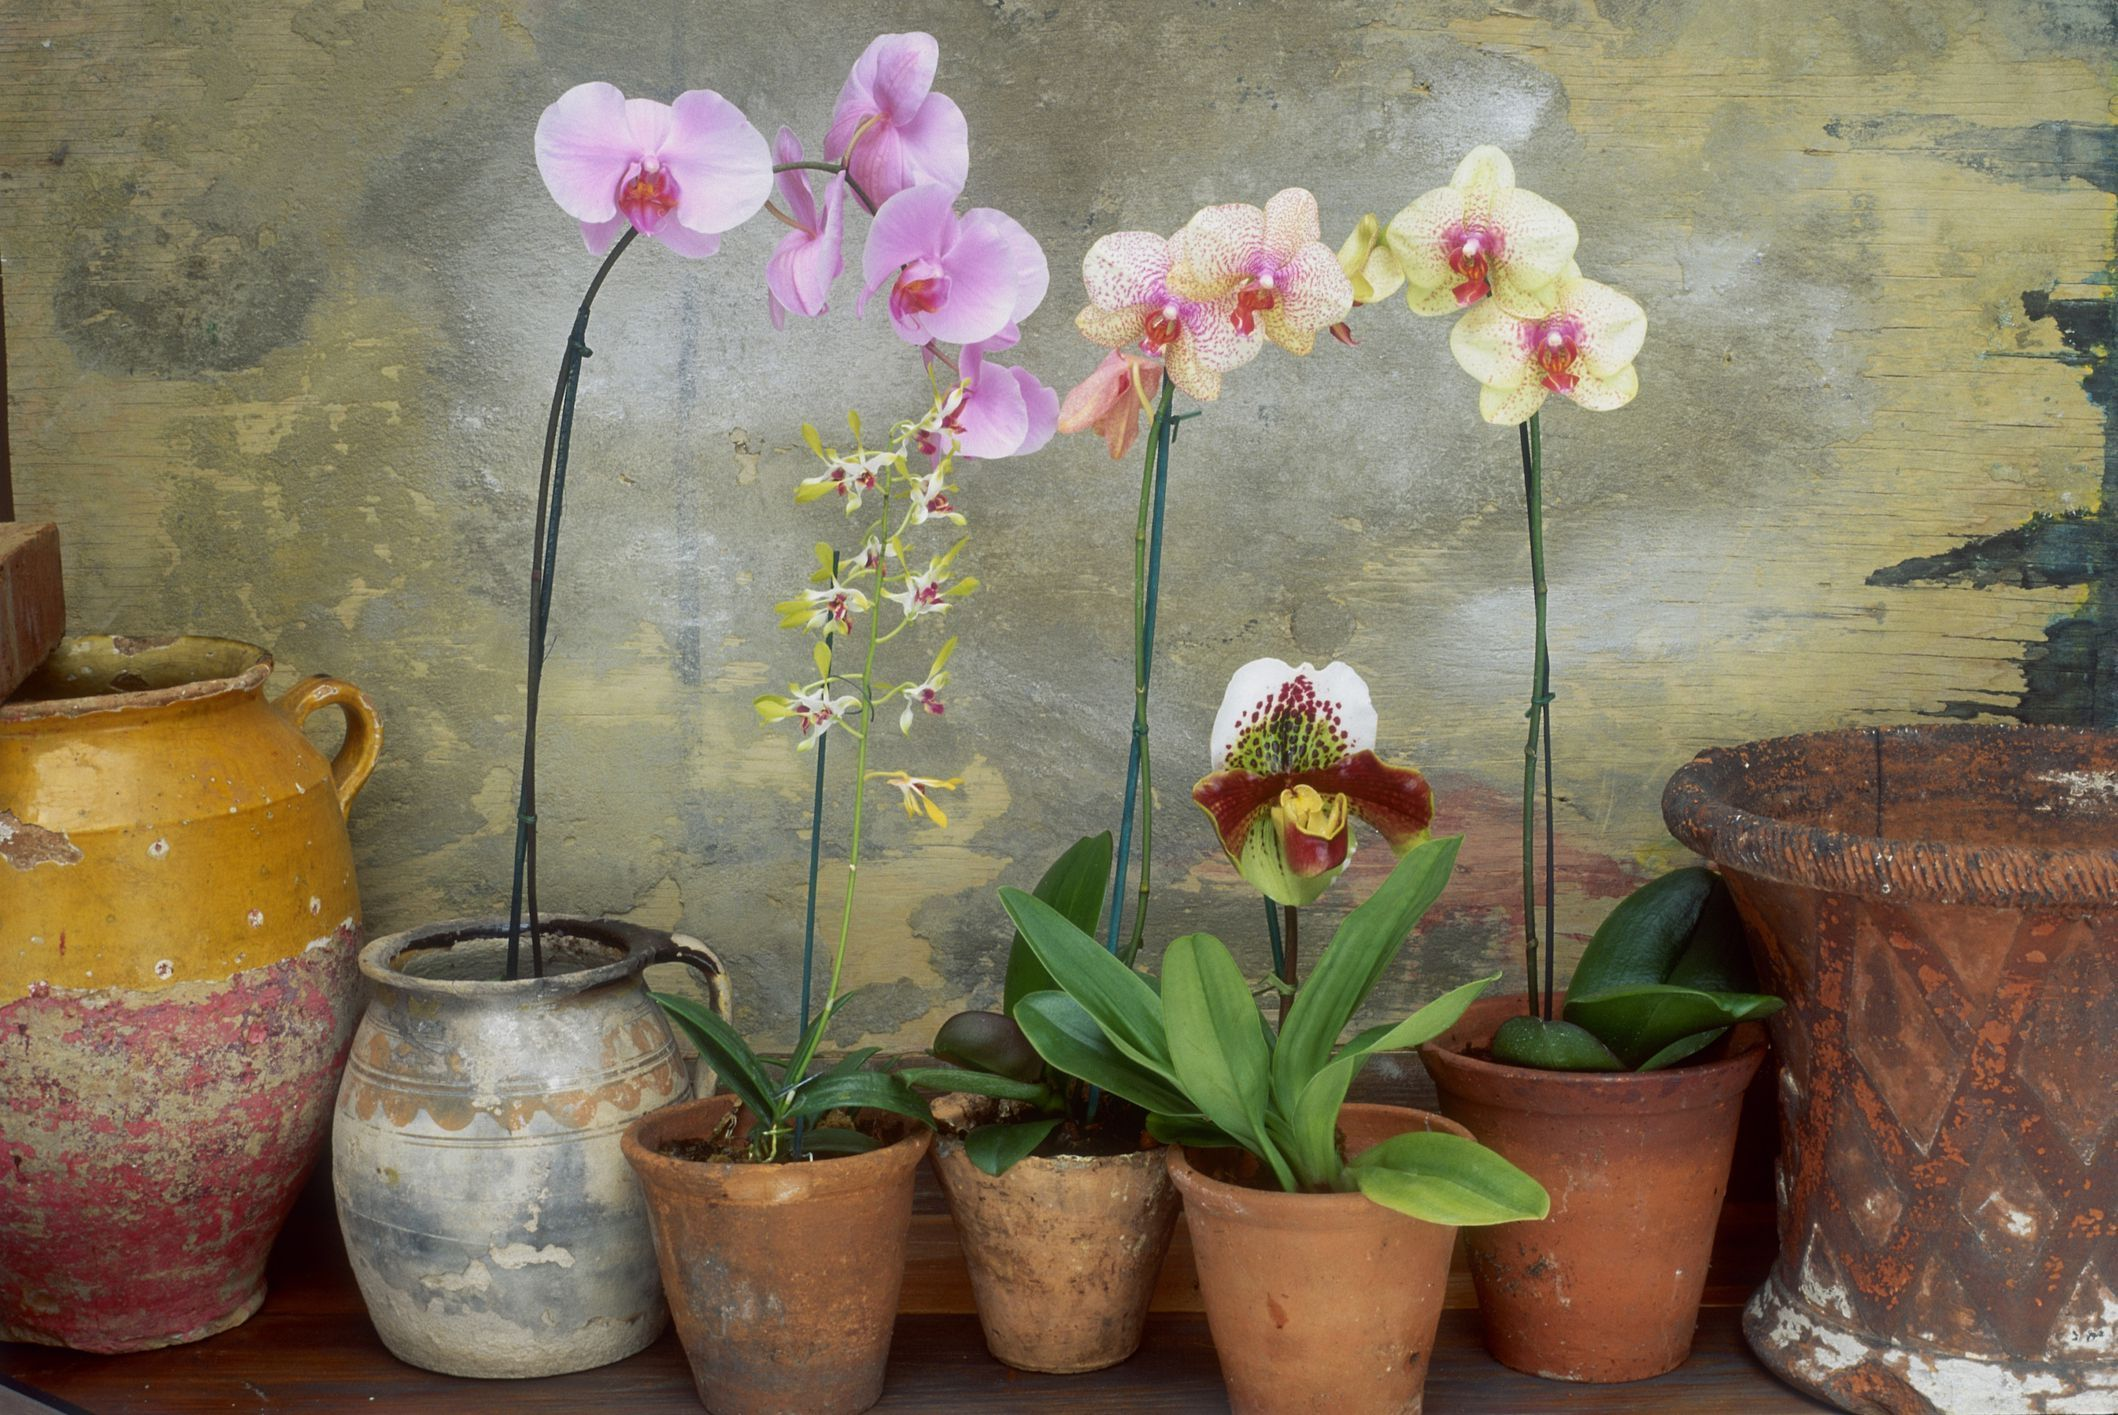 Learn How To Care For Your Orchids To Make The